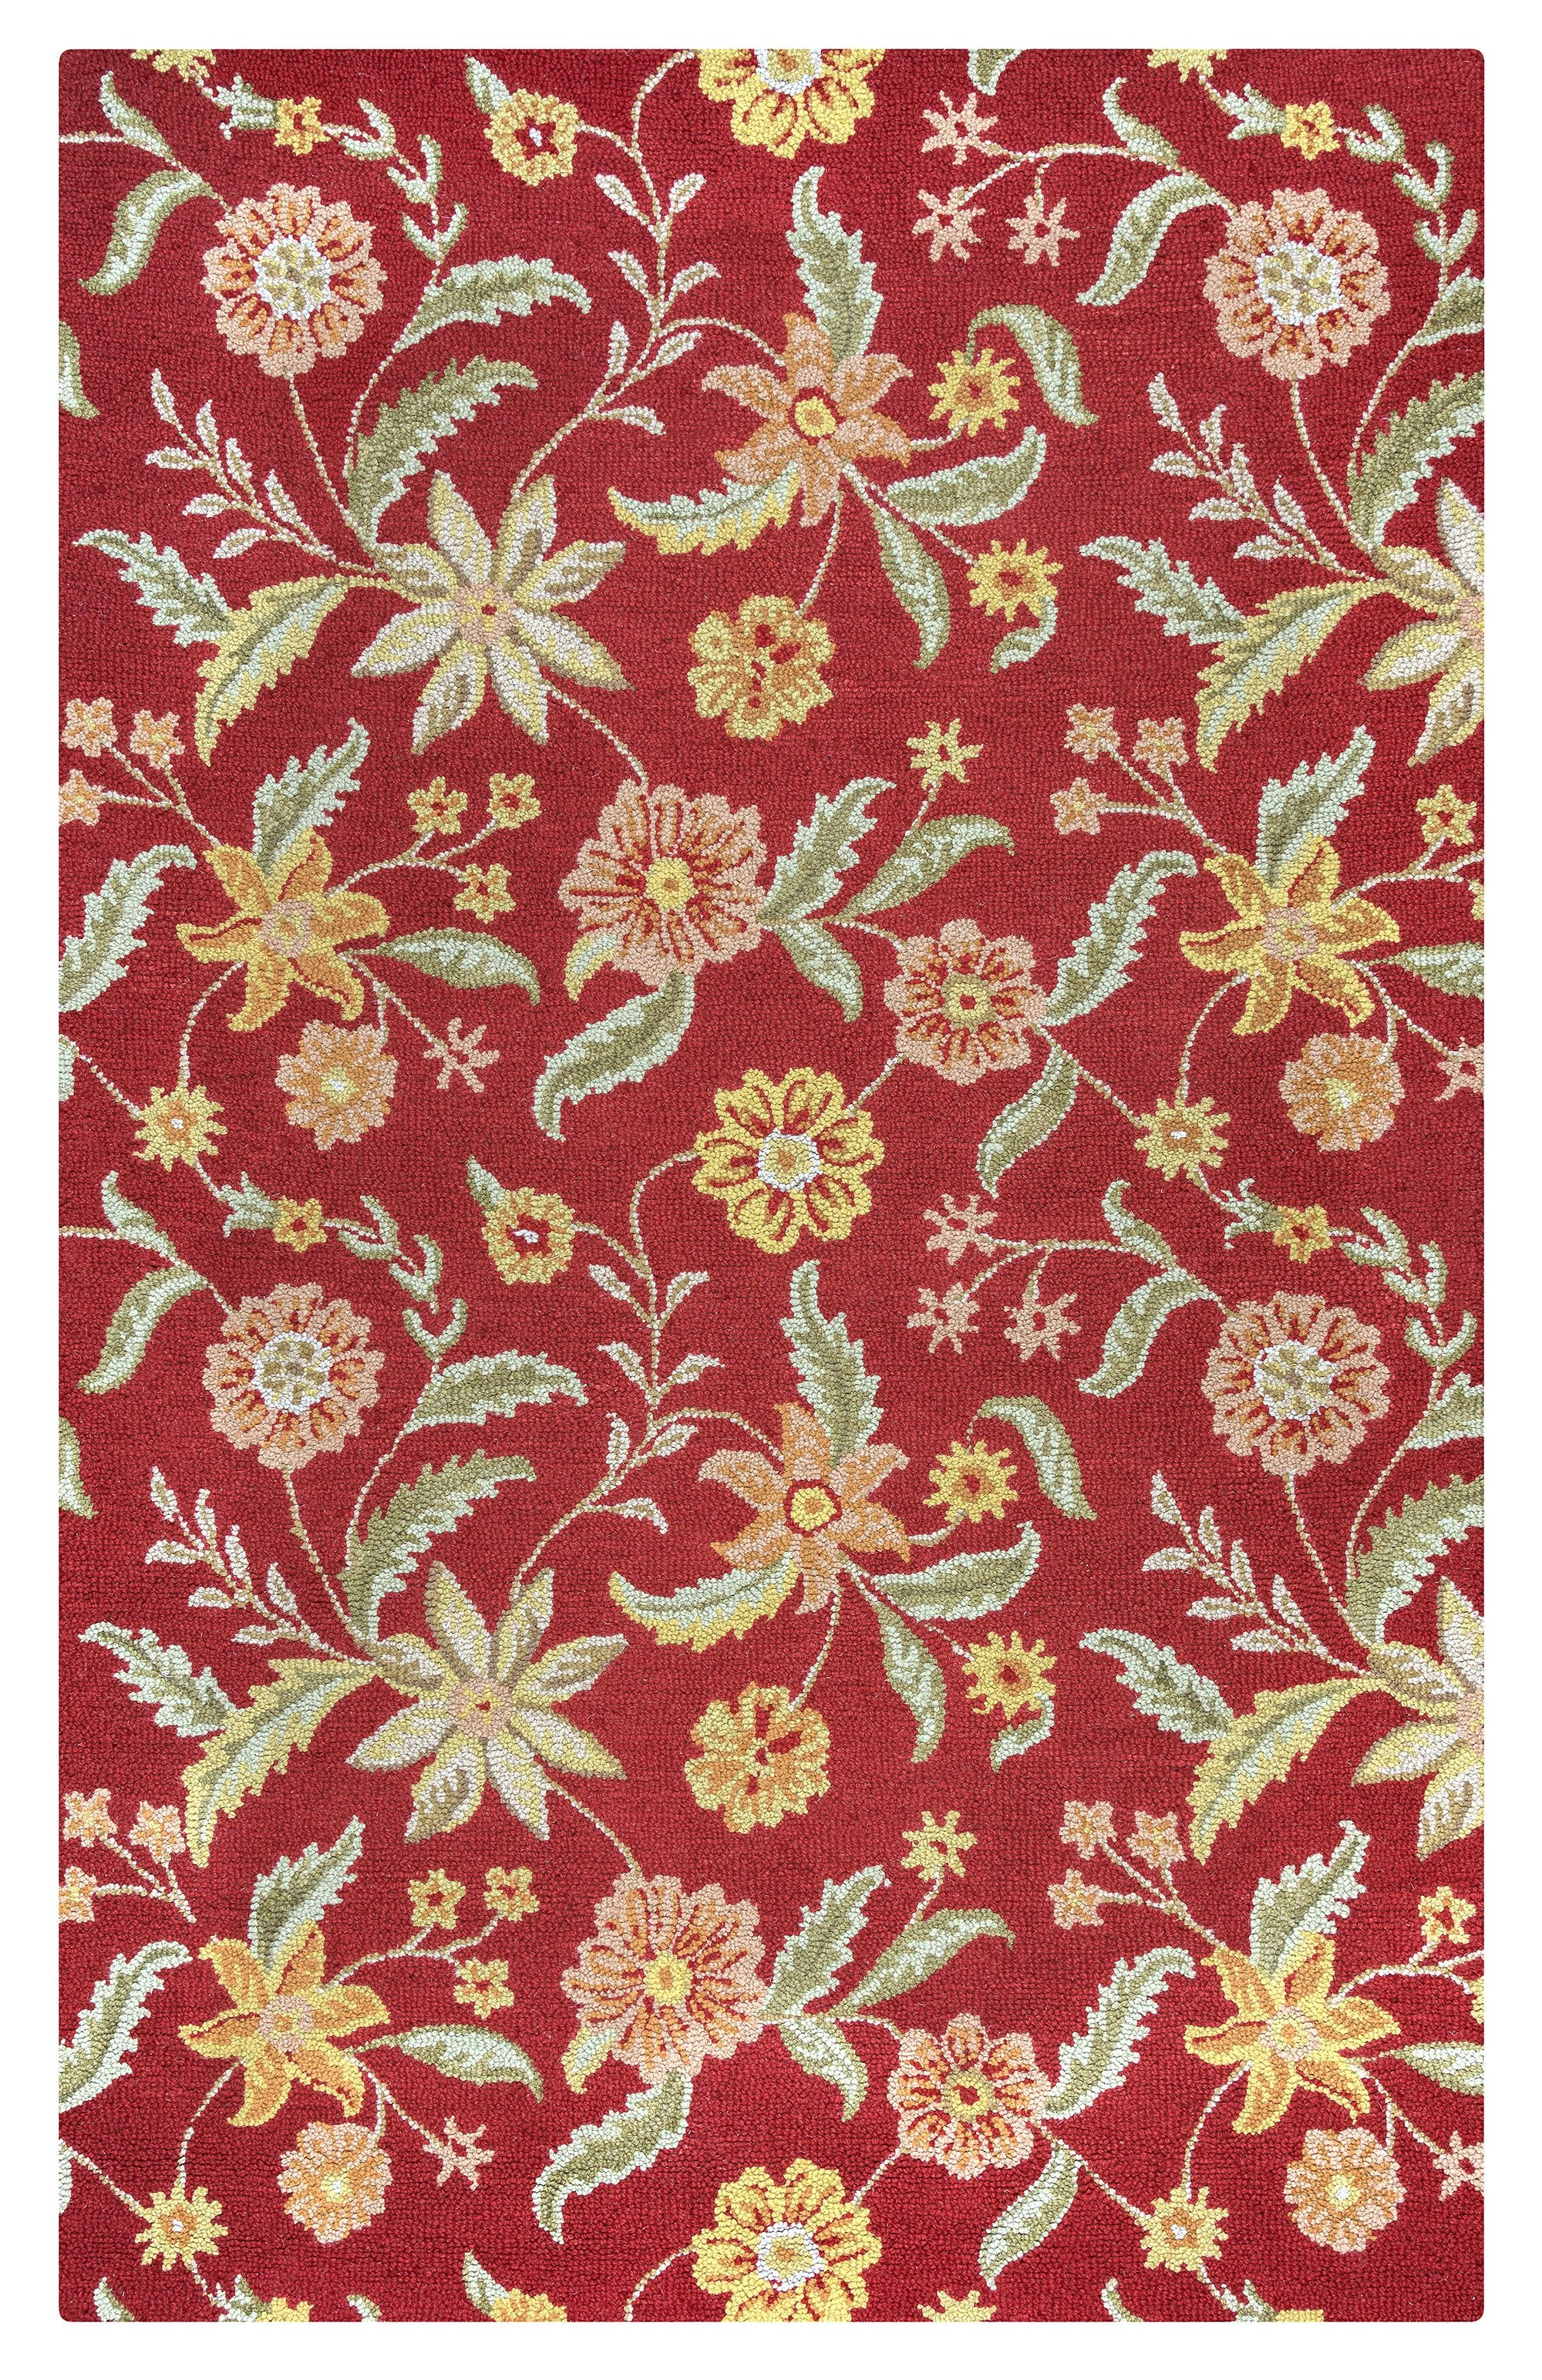 Rizzy home country ct1585 red floral area rug rugmethod for Red floral area rug